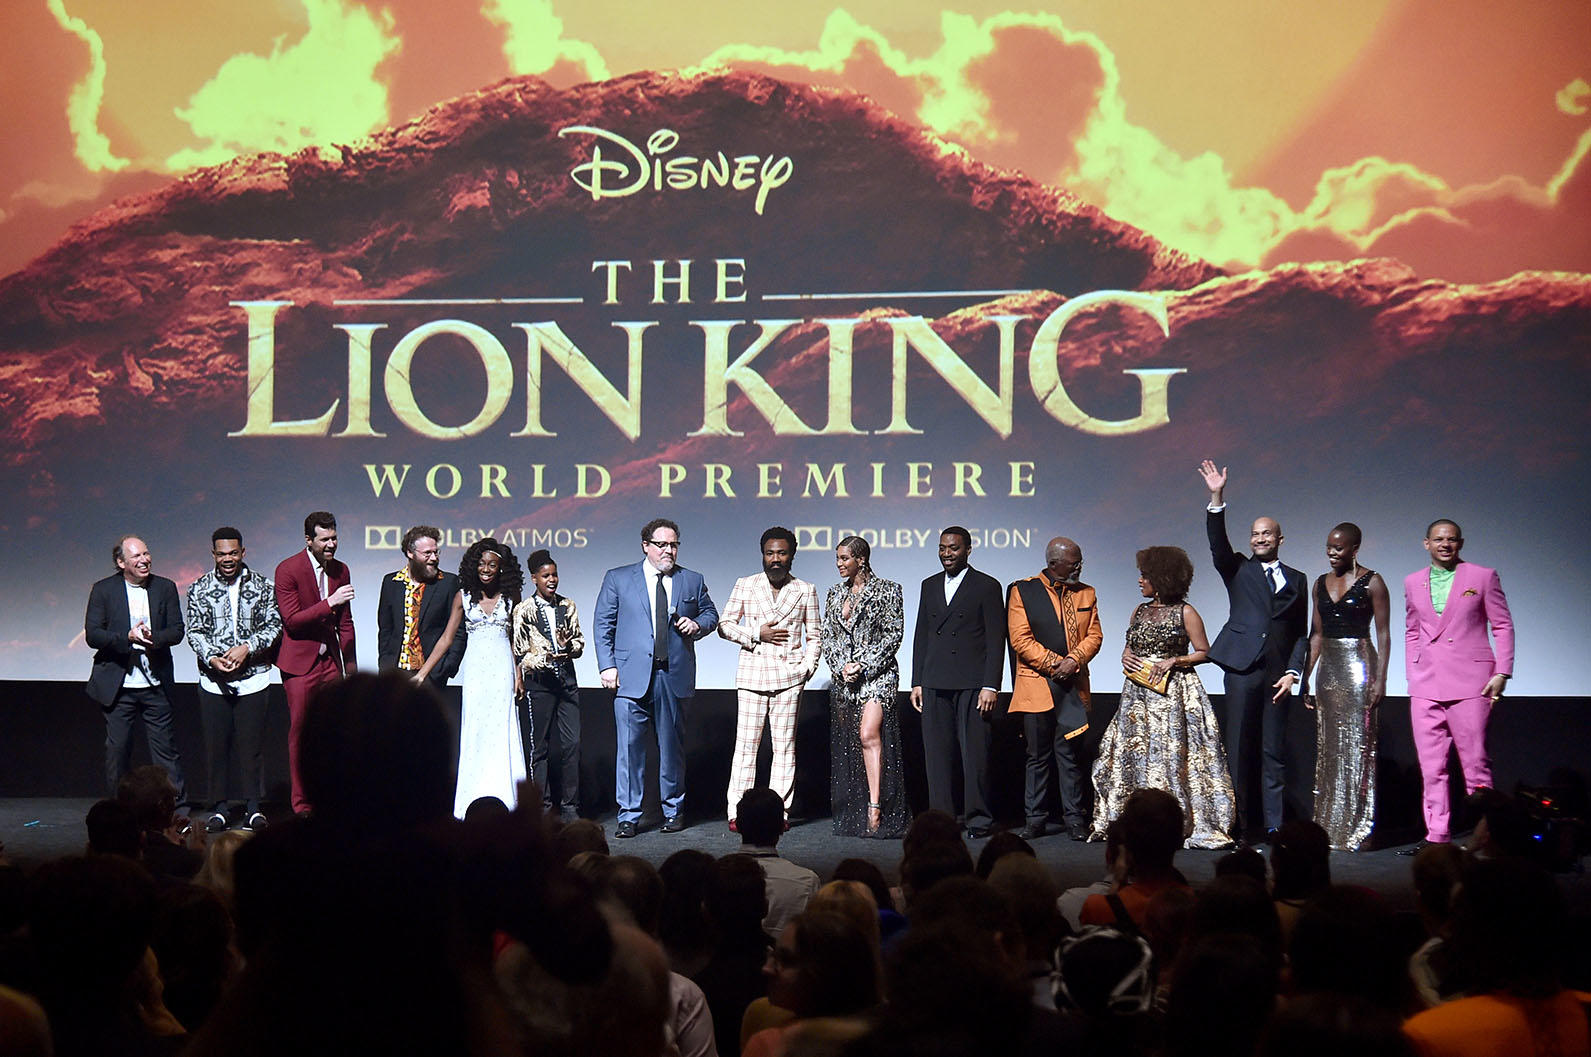 Who Played Simba in the New Lion King Movie? Here's the Answer. [Source: Disney]